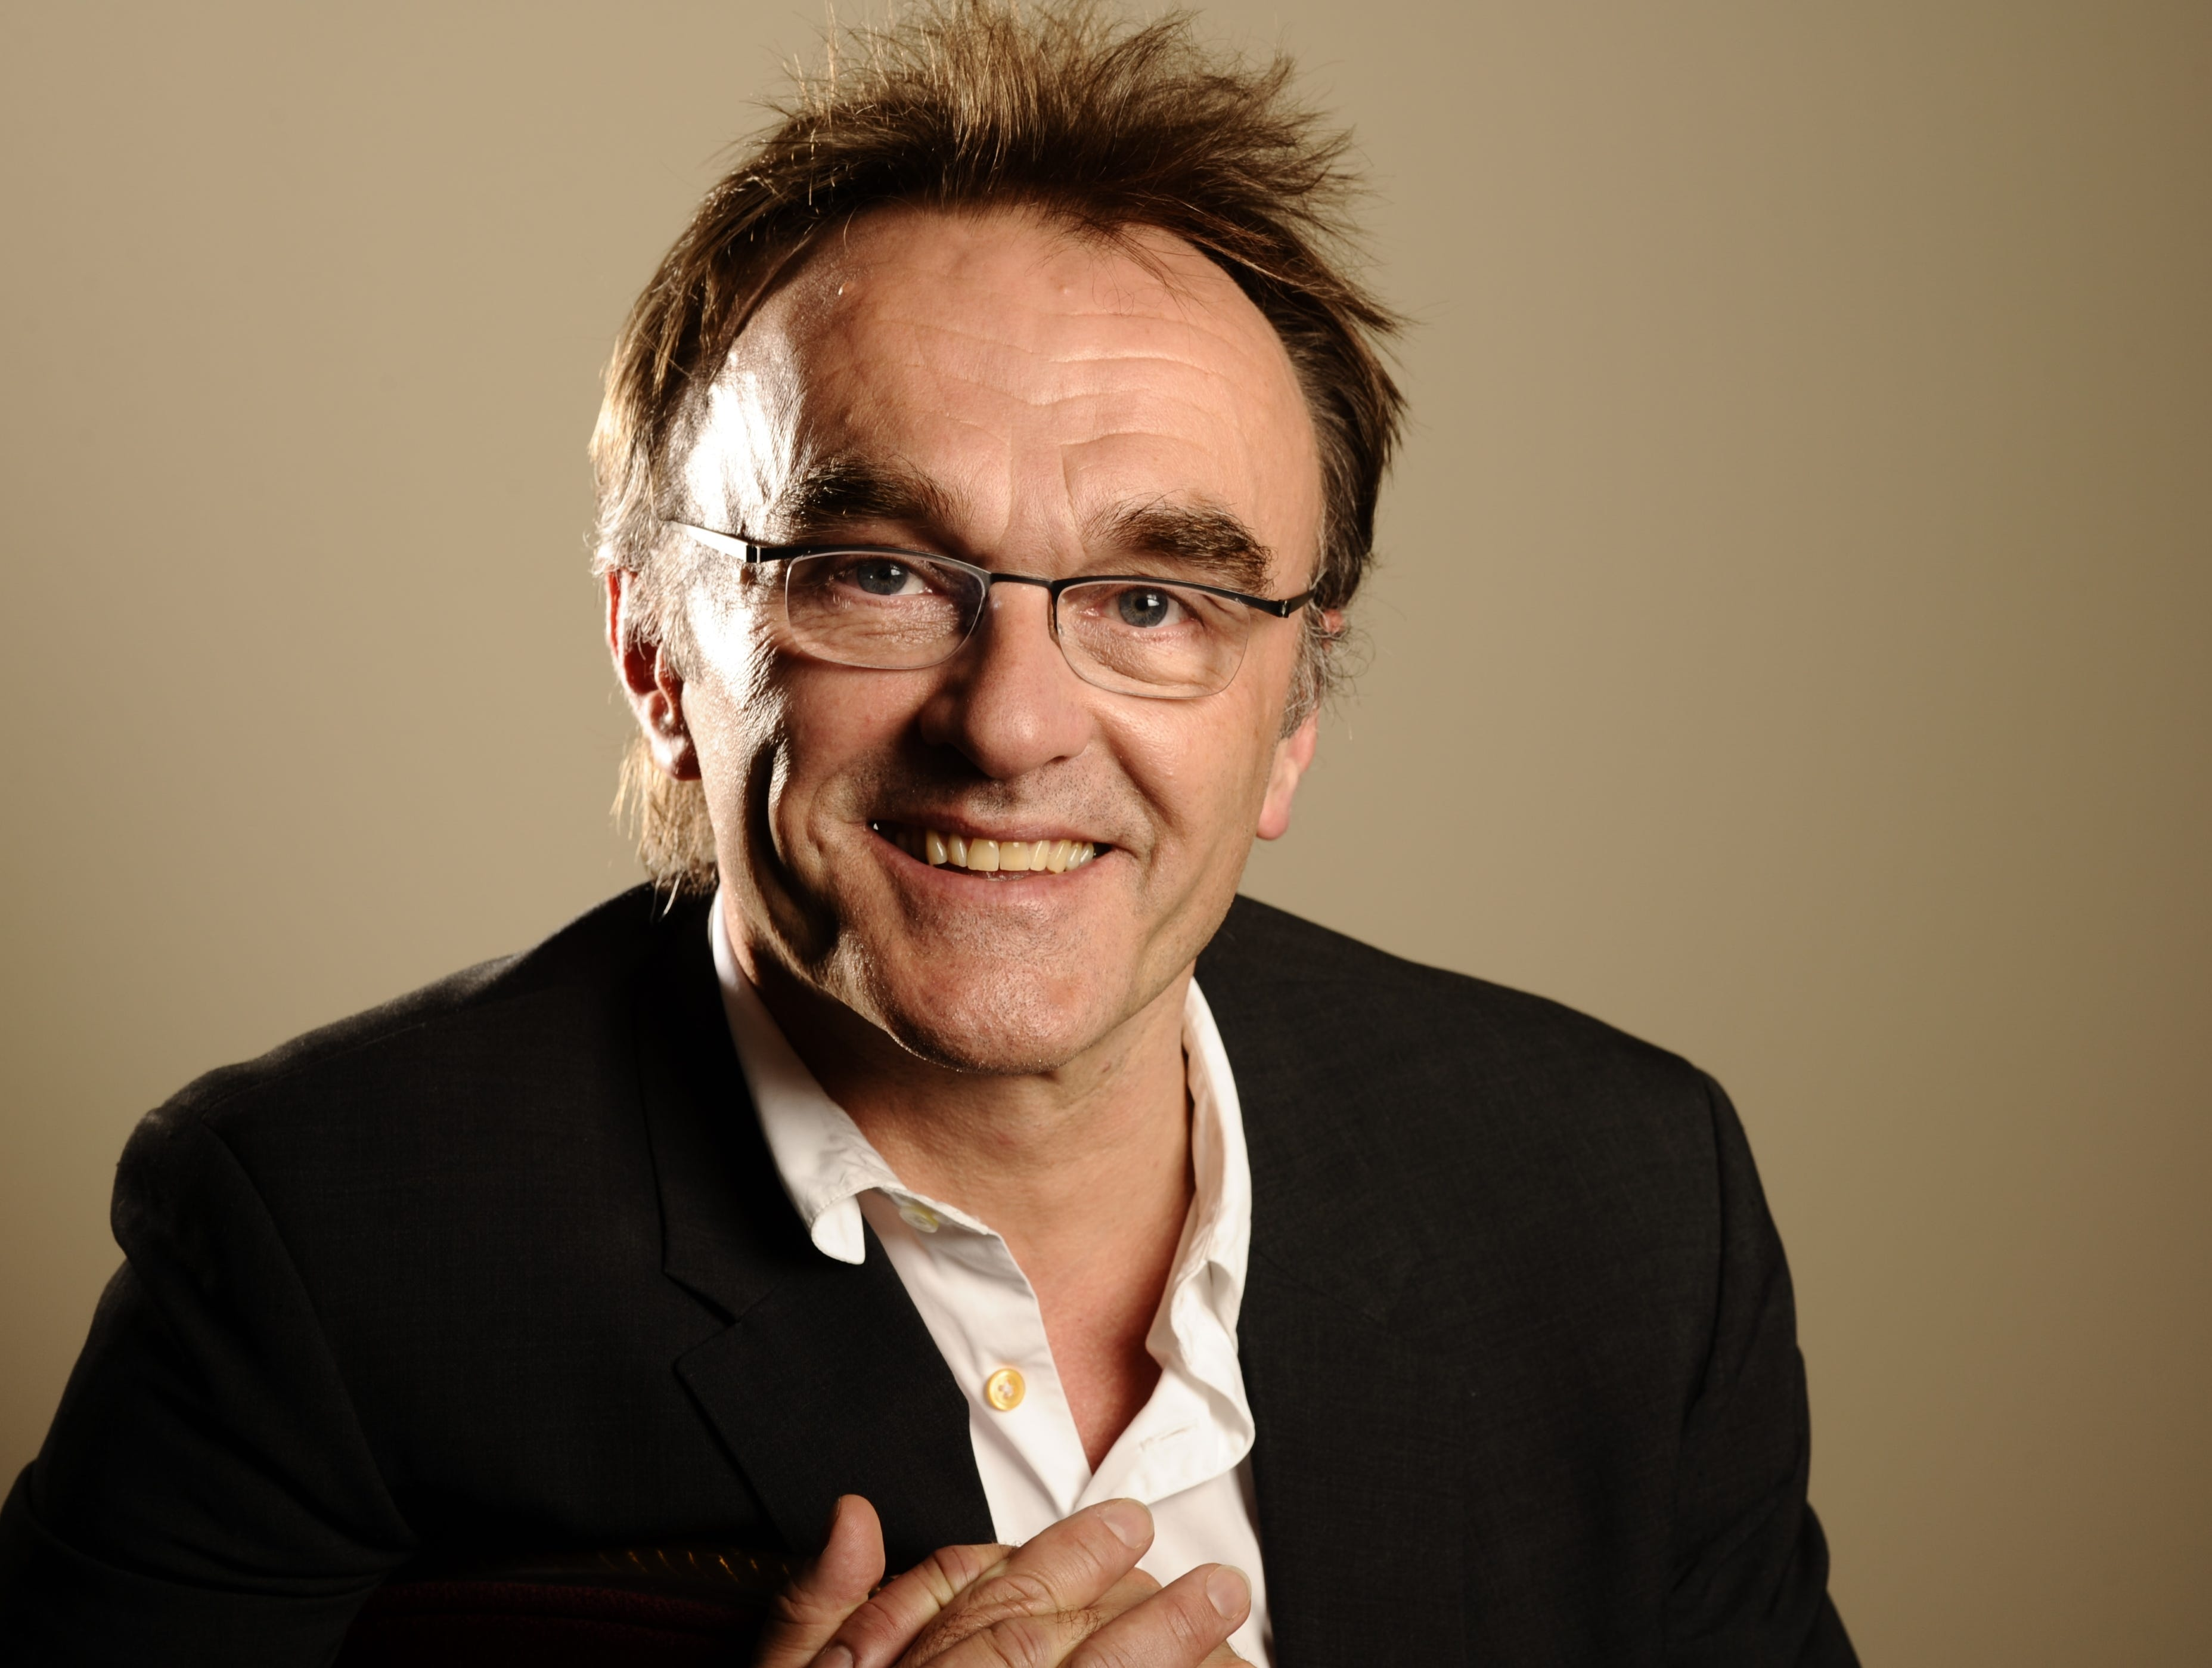 danny boyle manchester united